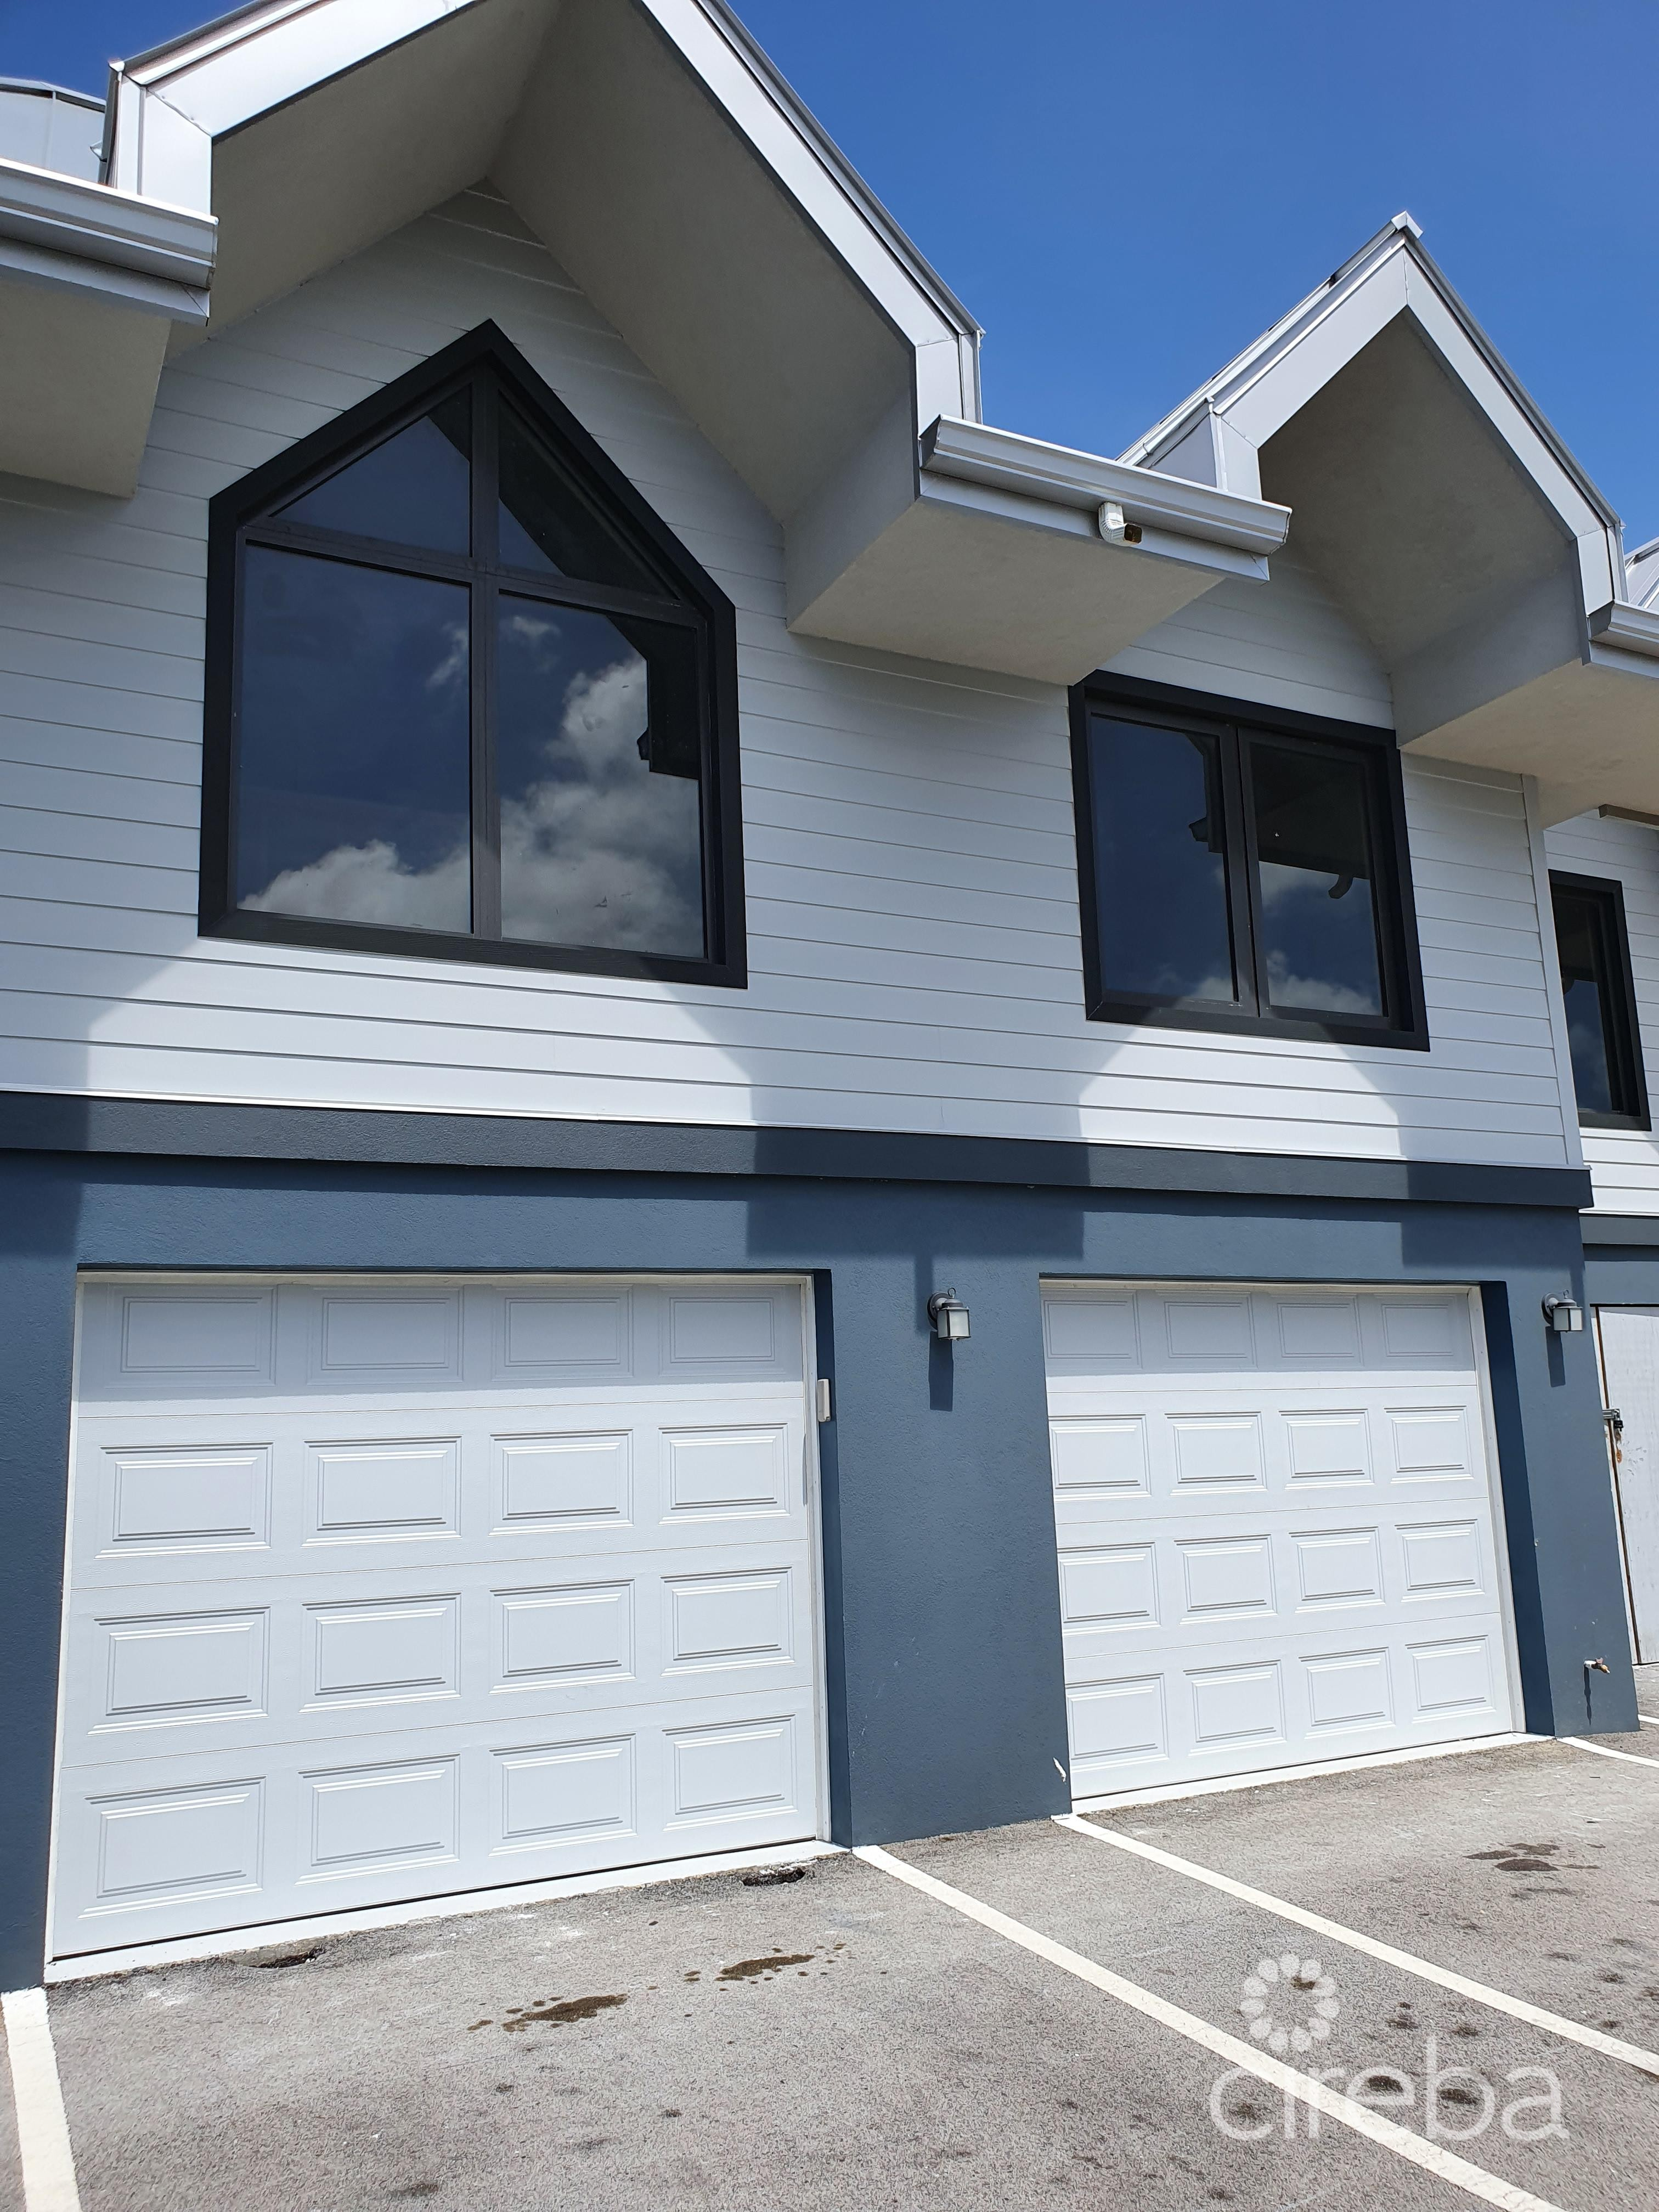 1 car garage with detached Carriage House above